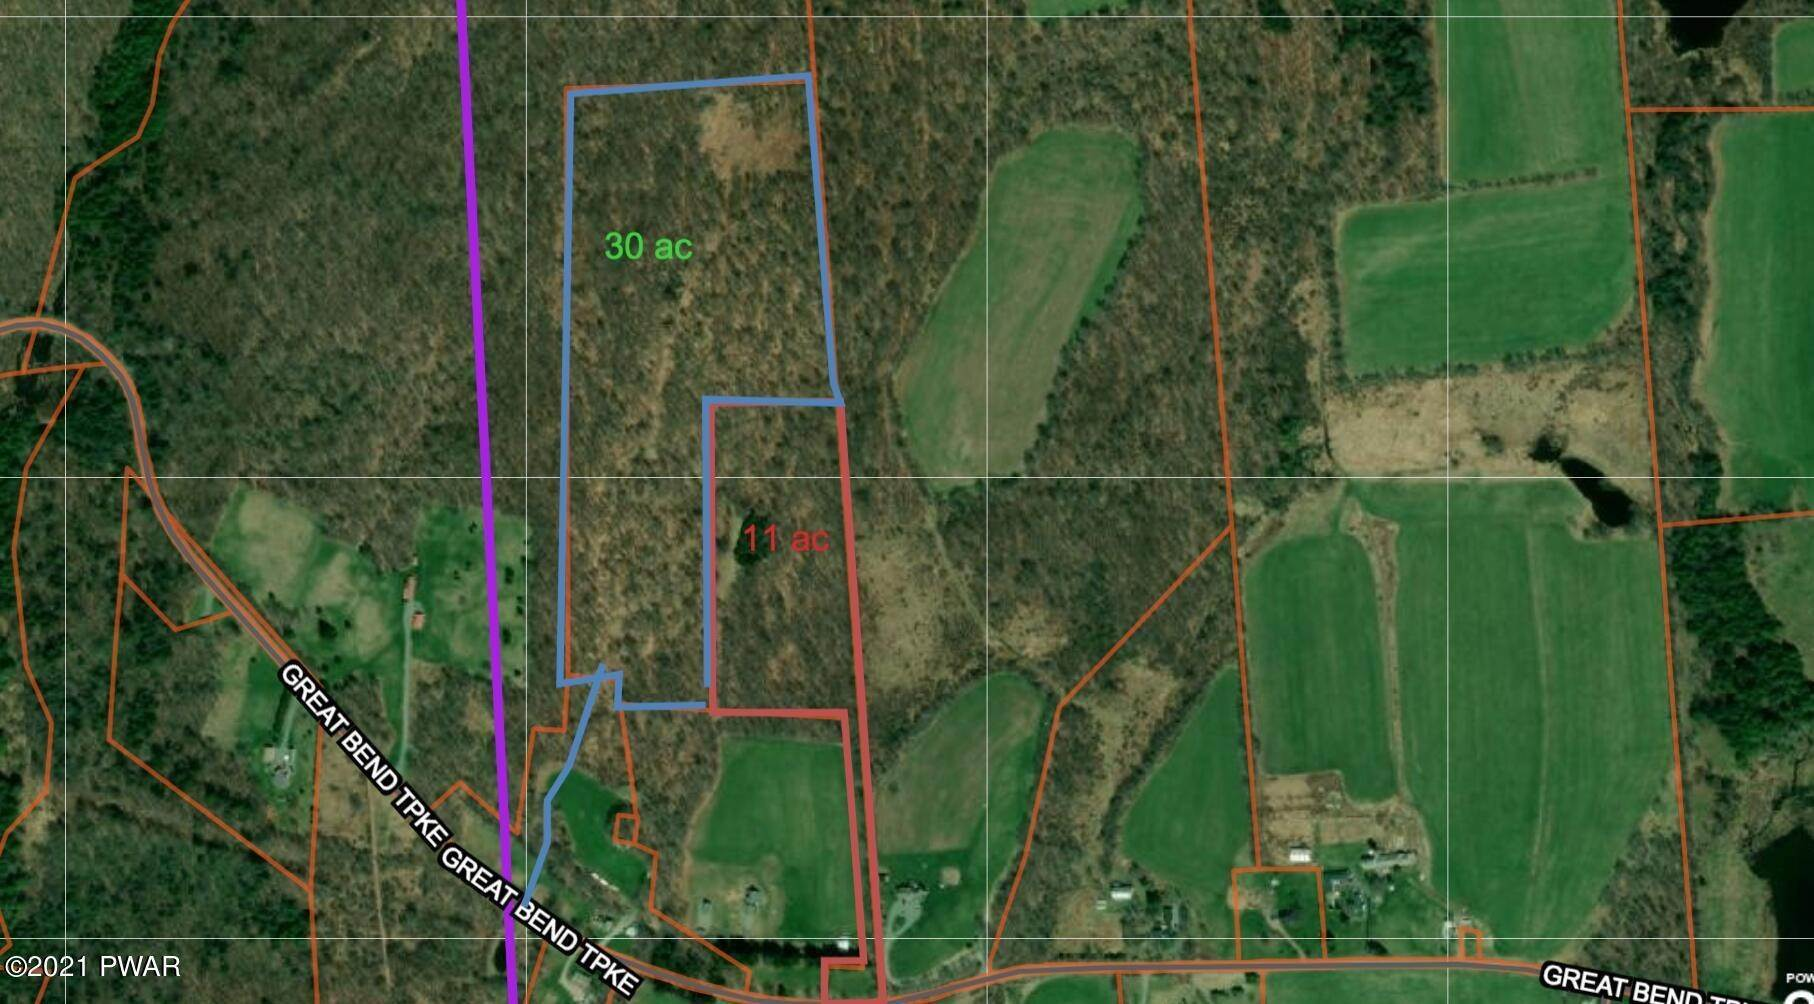 2. Land for Sale at 1663 Great Bend Tpke Pleasant Mount, Pennsylvania 18453 United States